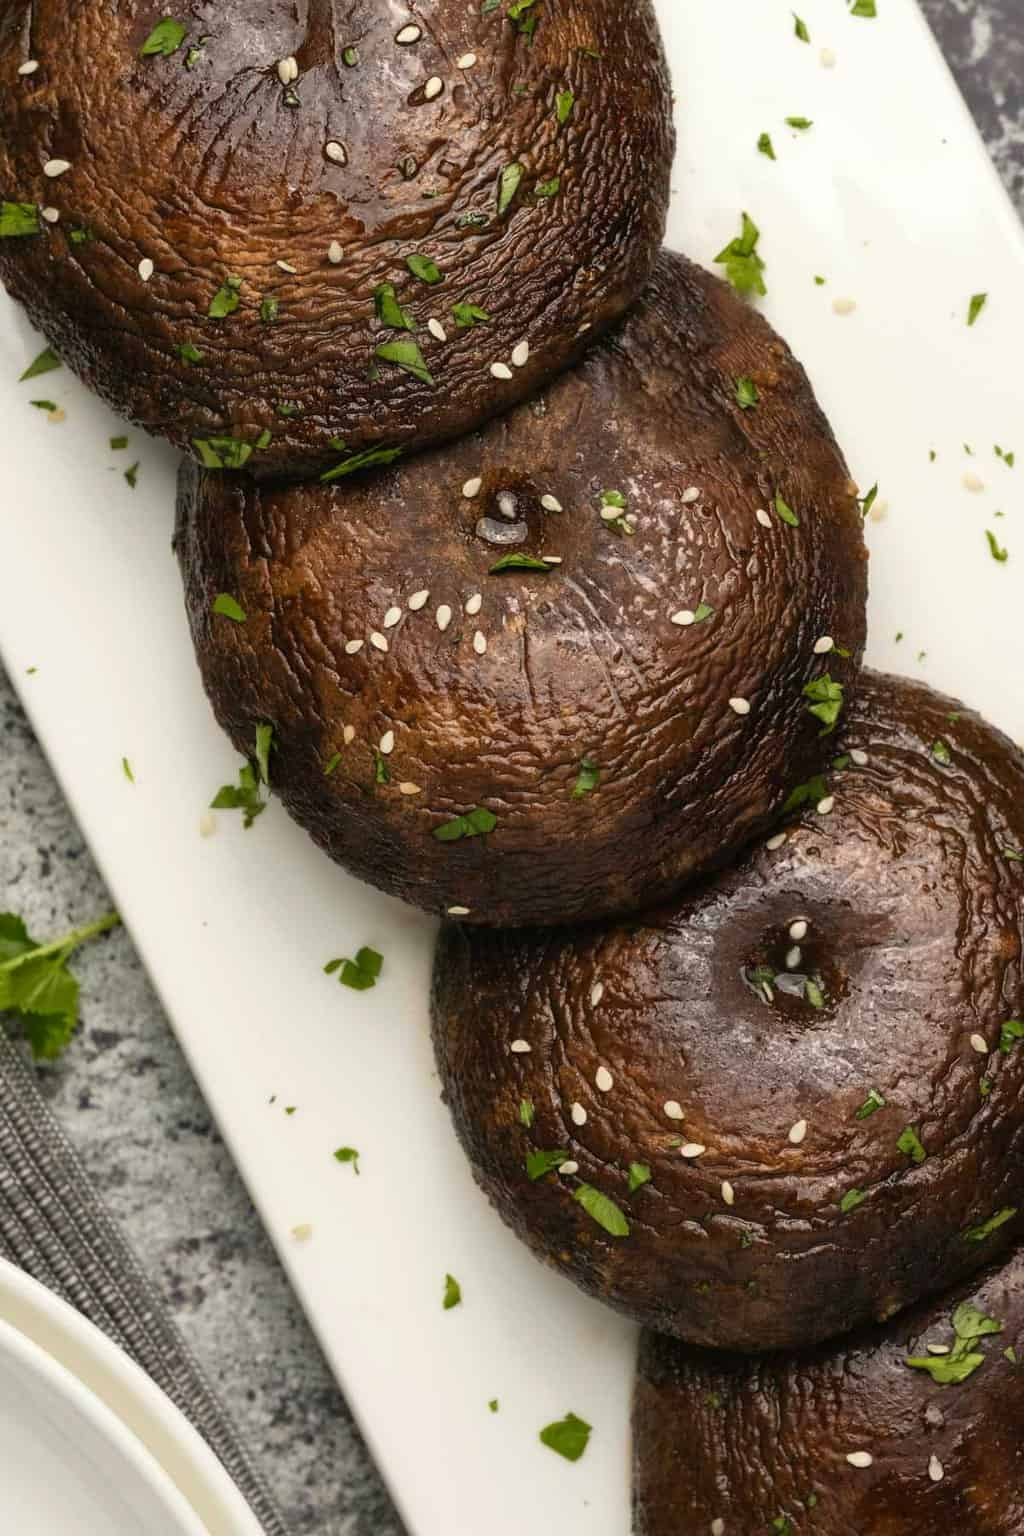 Baked portobello mushrooms sprinkled with chopped cilantro and sesame seeds on a white plate.